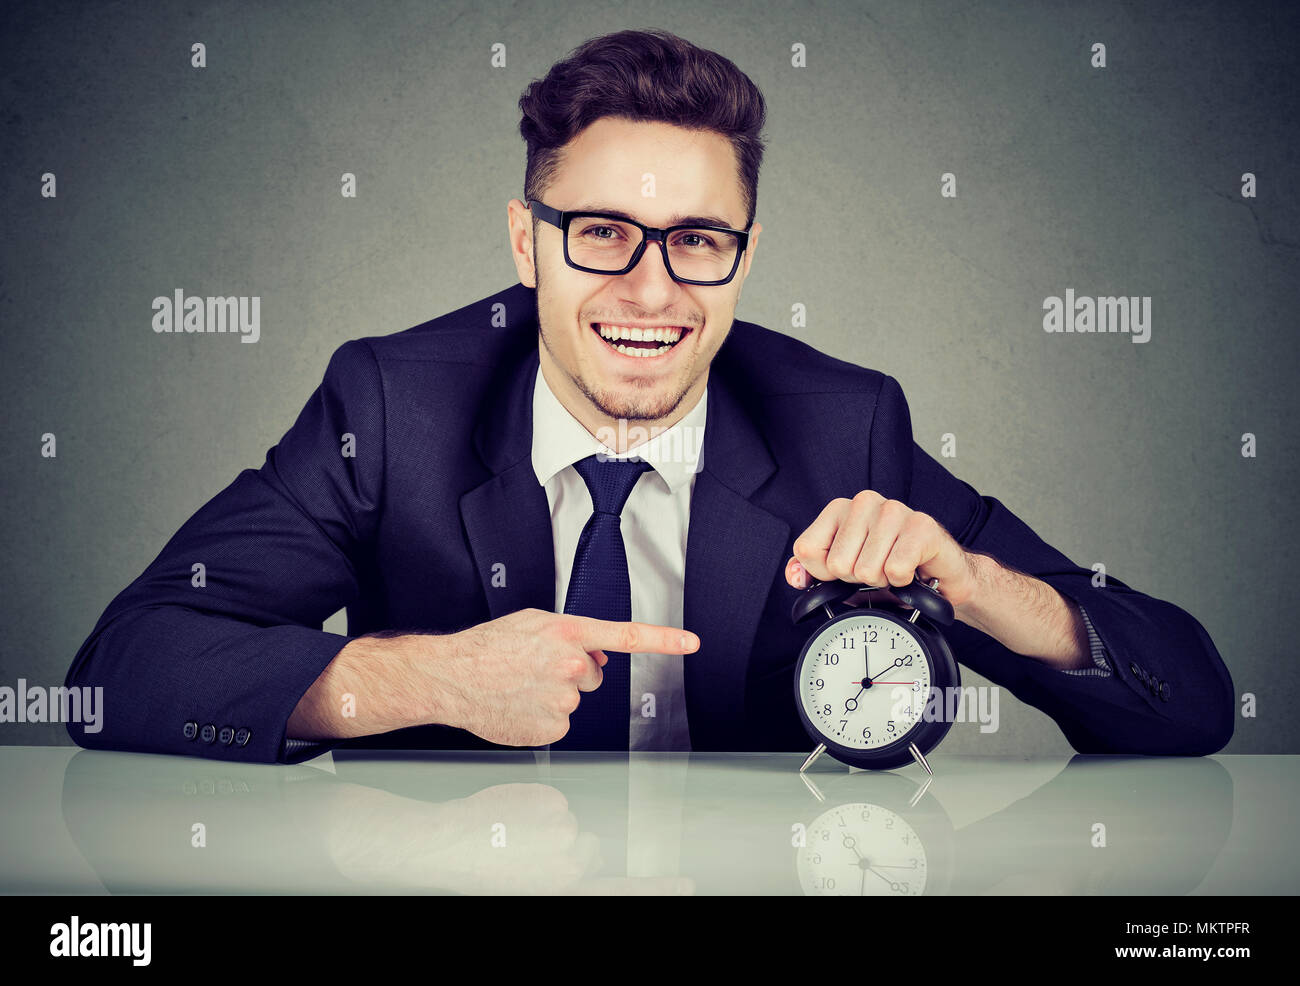 Young man in formal suit pointing at clock looking excitedly at camera happy with schedule. - Stock Image